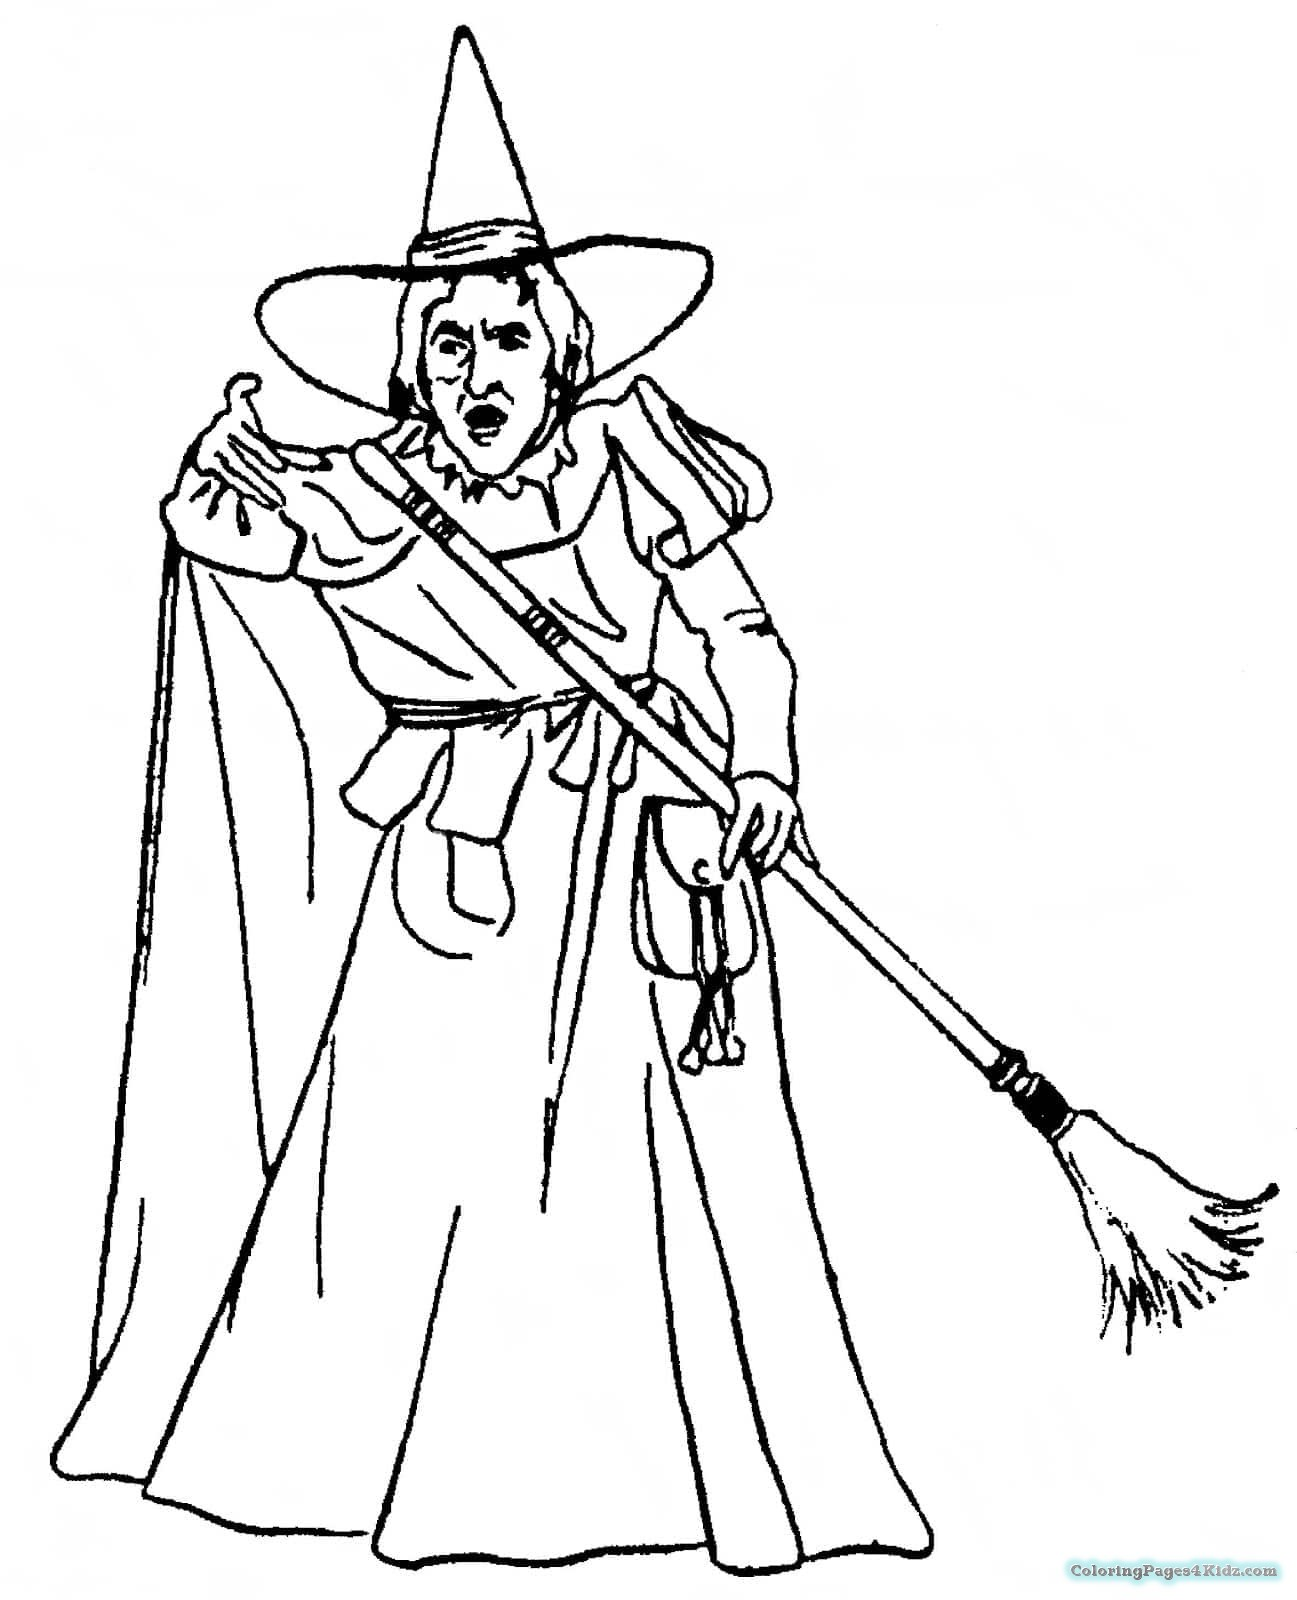 coloring printable witch printabel witch flying on broom coloring page for kidsfree witch printable coloring